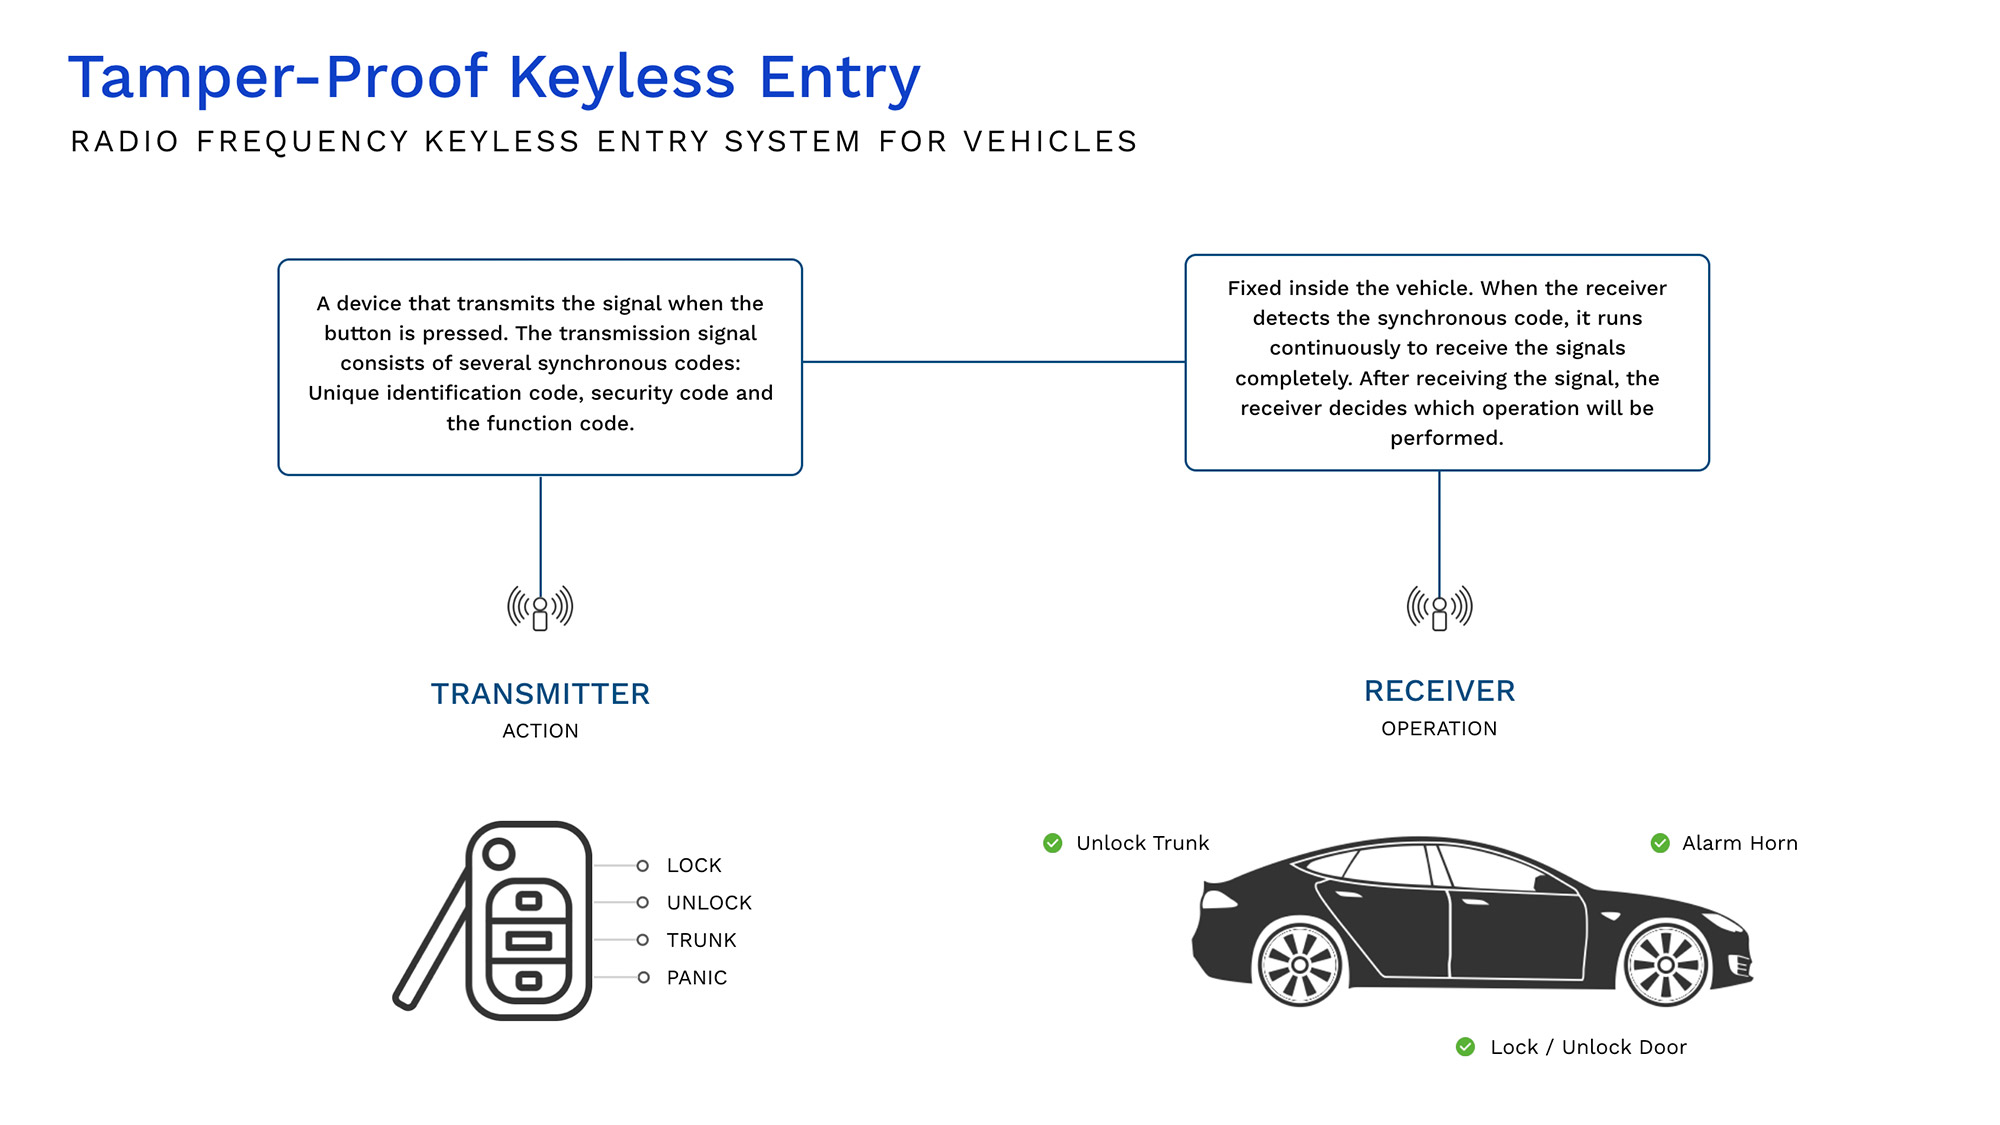 Tamper Proof Keyless Entry - 2